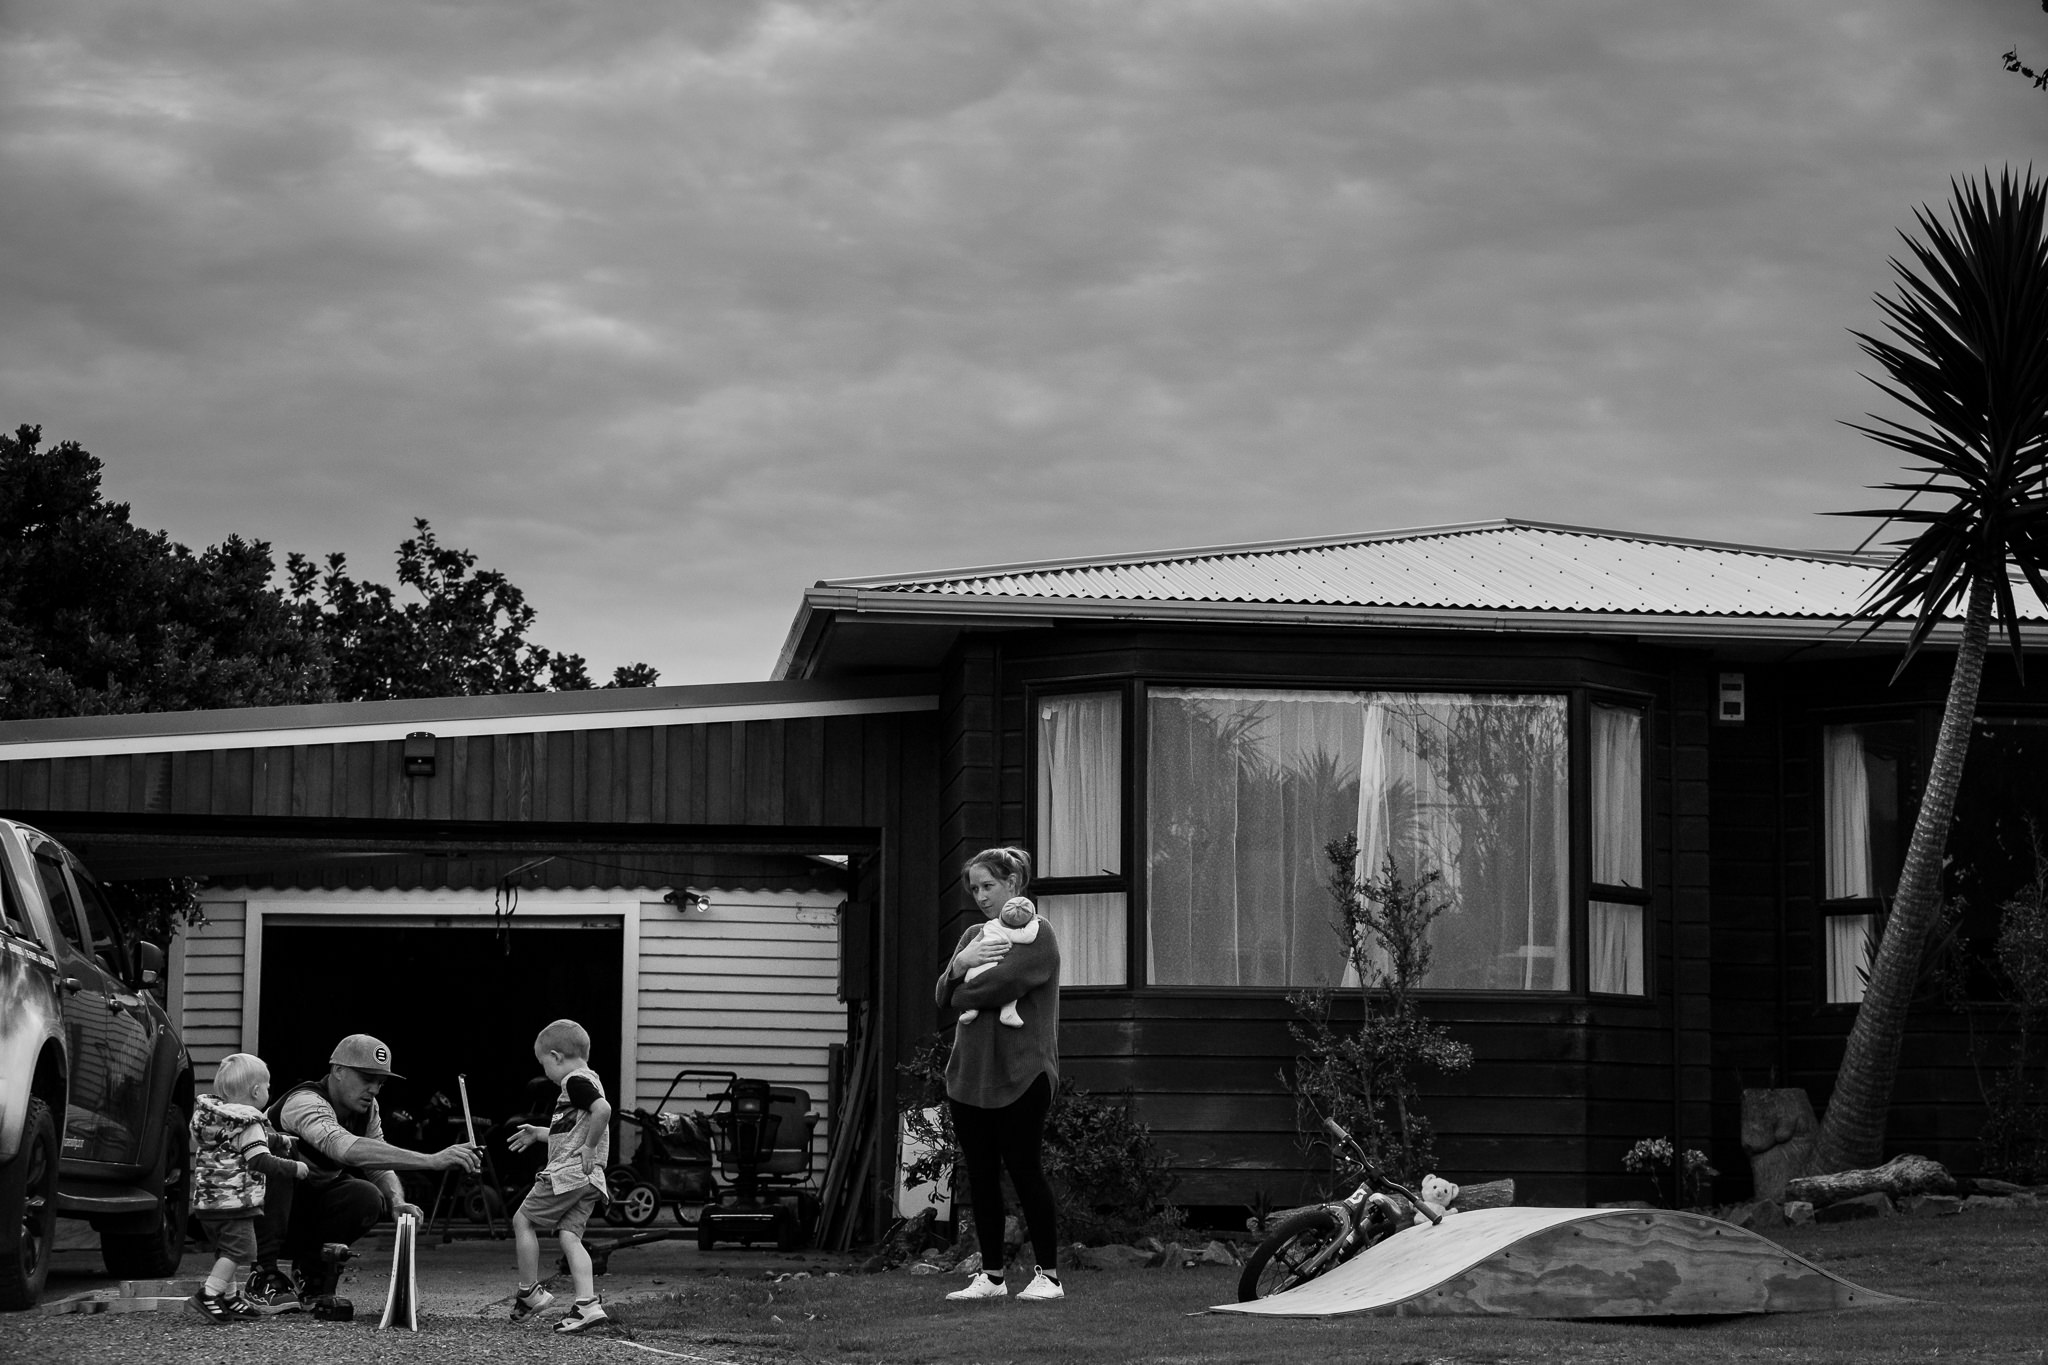 Photograph of a family standing outside their home in Raumati